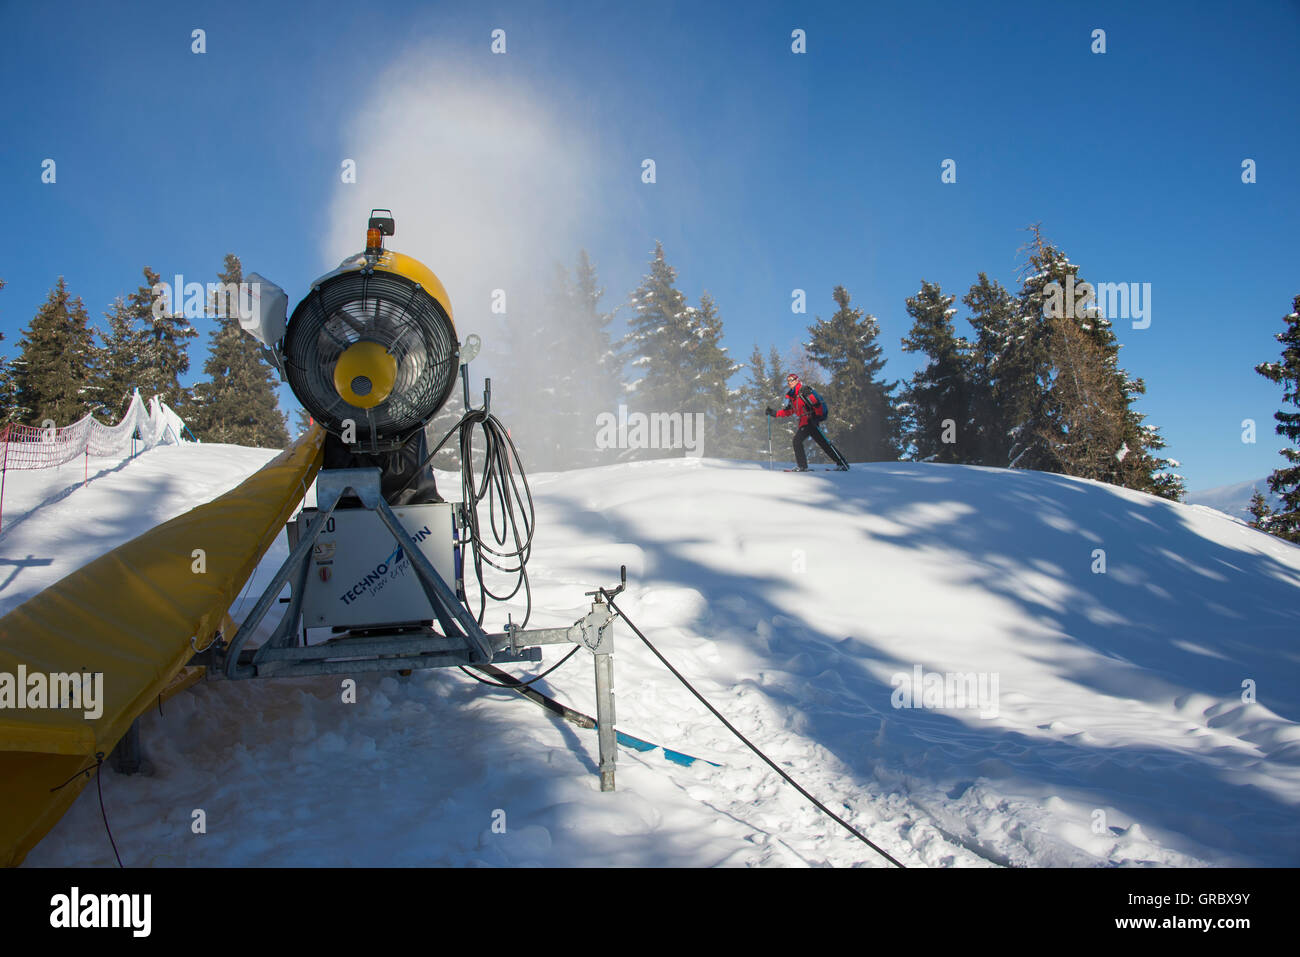 Active Yellow Snow Cannon In Front Of Snowshoer, Fir Trees And Blue Sky - Stock Image